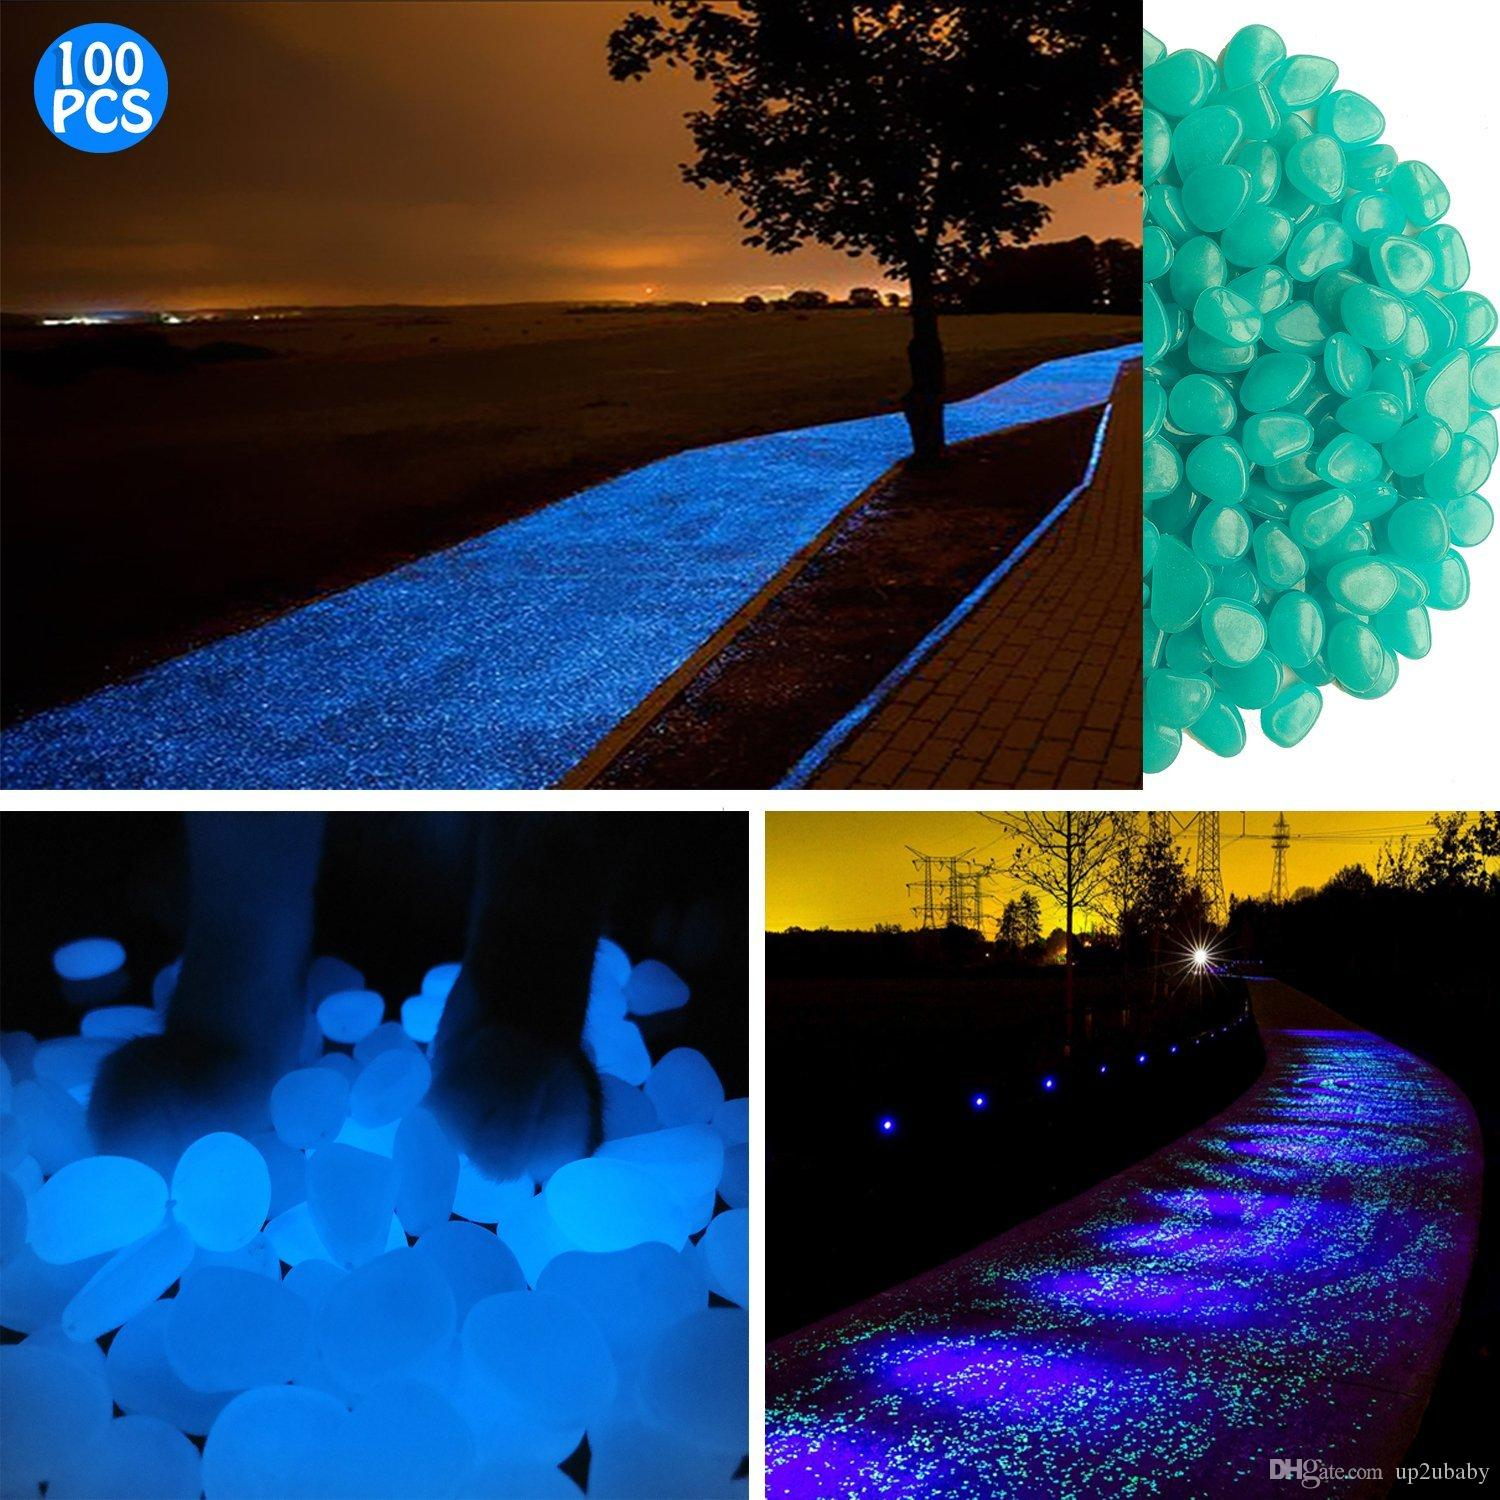 2018 glow in the dark garden pebbles glowing stones for walkway yard and decorblue from up2ubaby 692 dhgatecom - Glow In The Dark Garden Pebbles